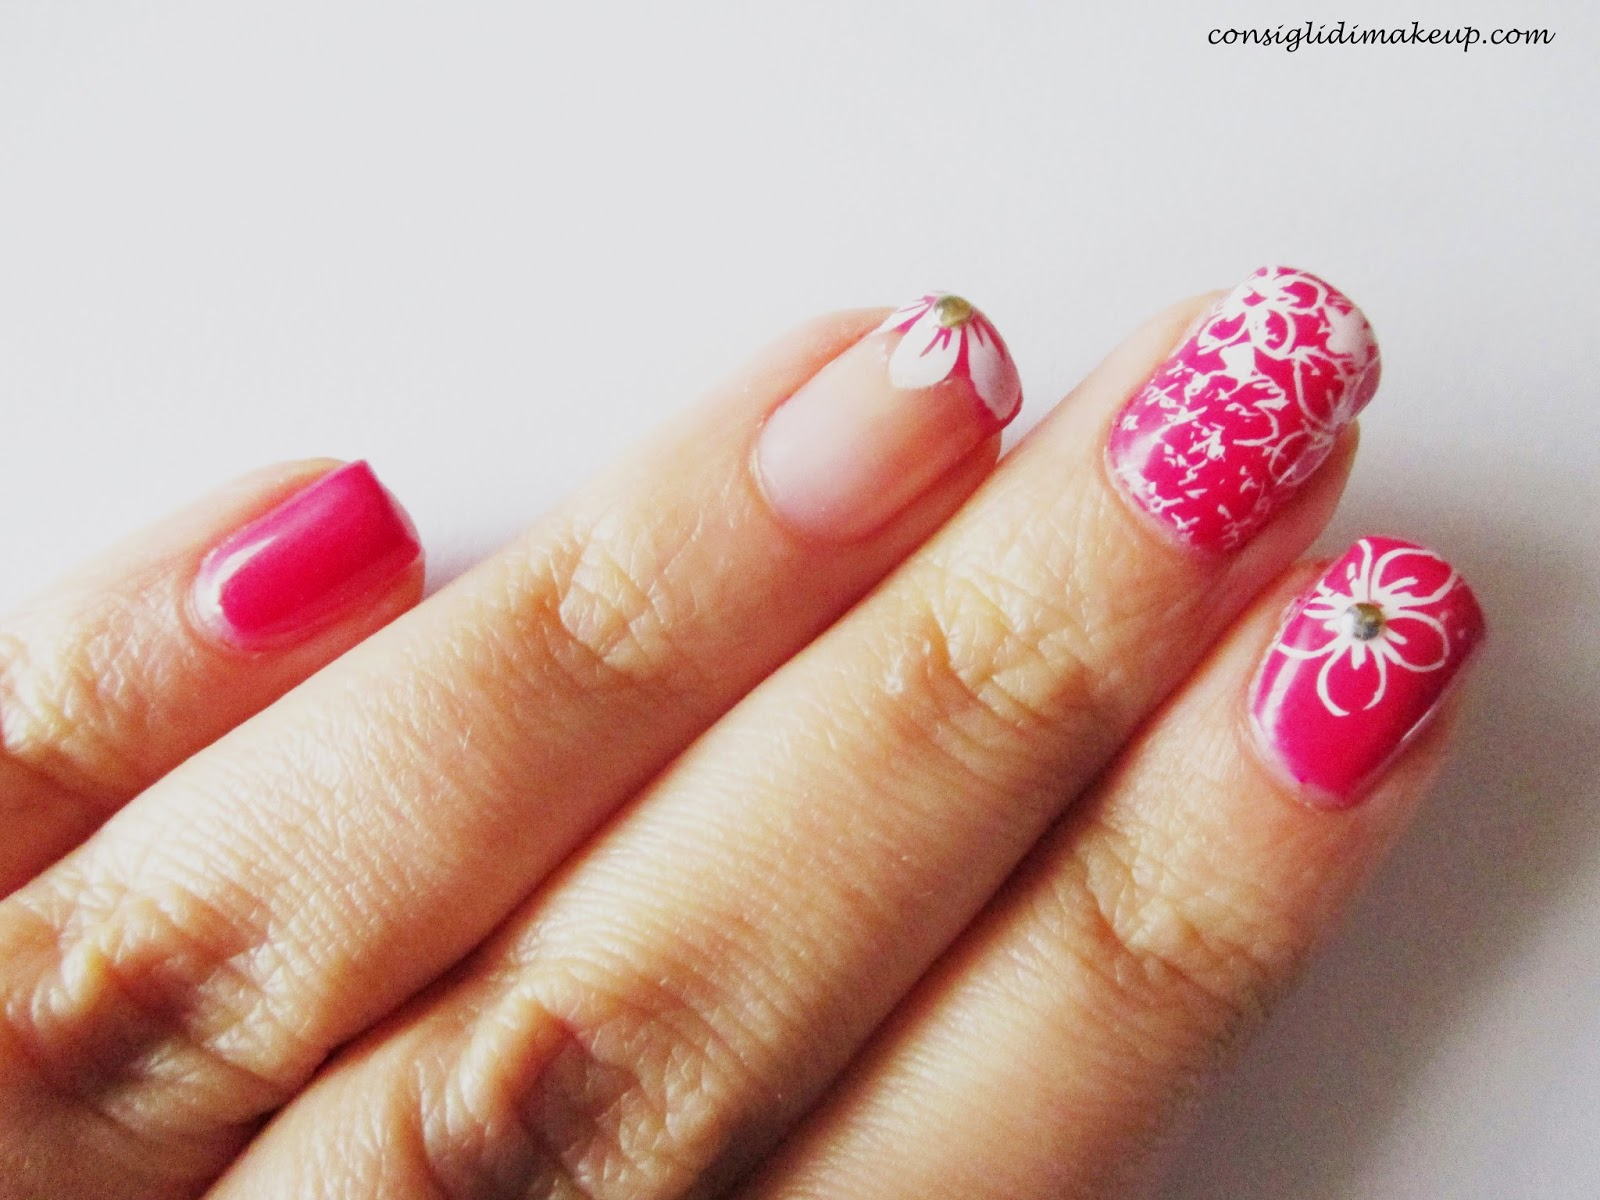 Nail art: Flowers & Words